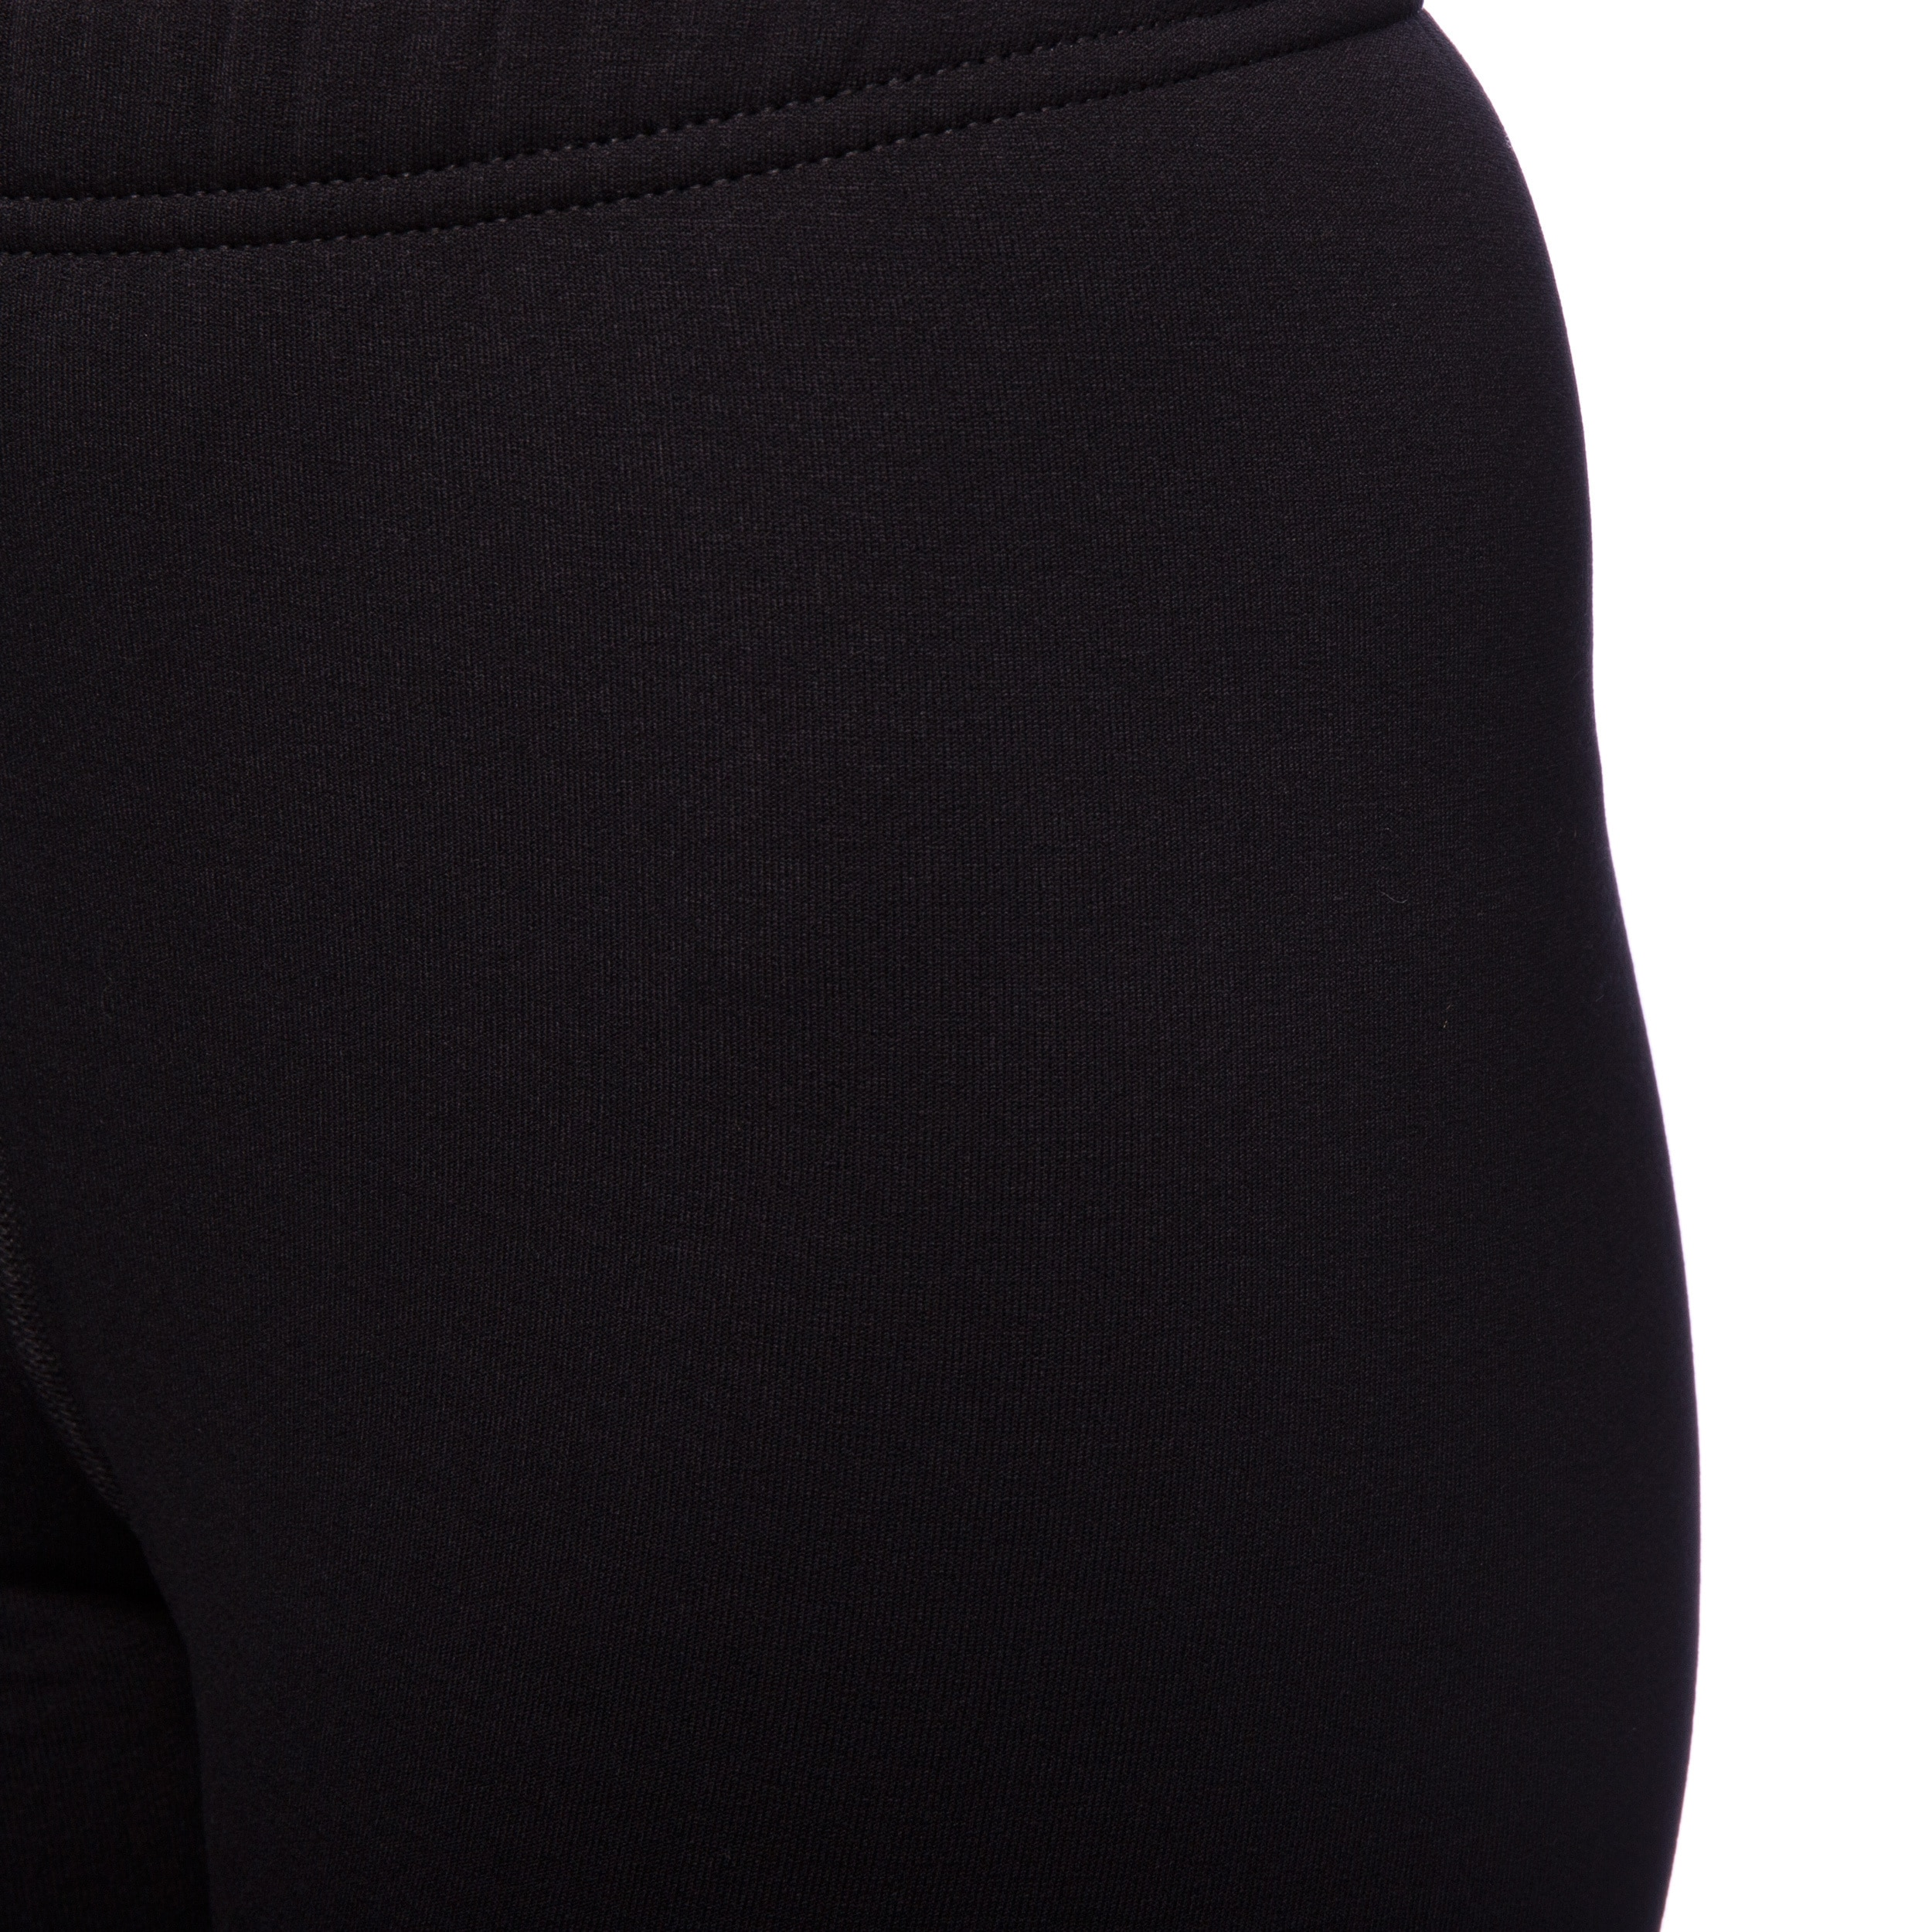 ca039ec2071b9 Shop Ladies Polartec Power Stretch Wool Tights - Free Shipping Today -  Overstock - 10300508